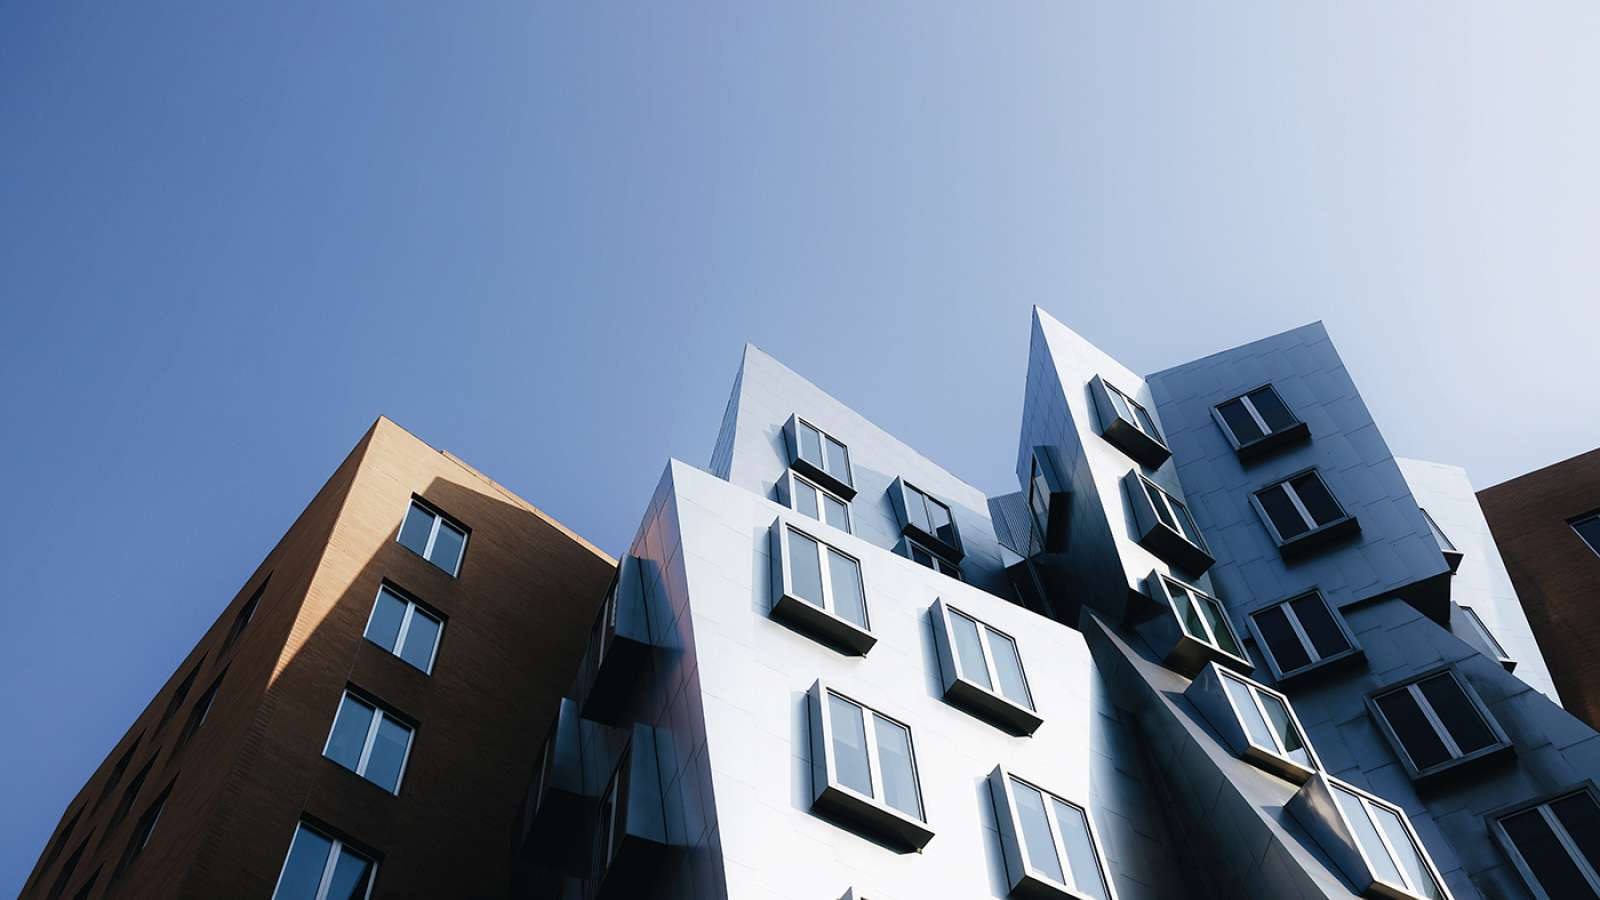 Investing In Real Estate Should Not Be Risky, If You Have A Plan